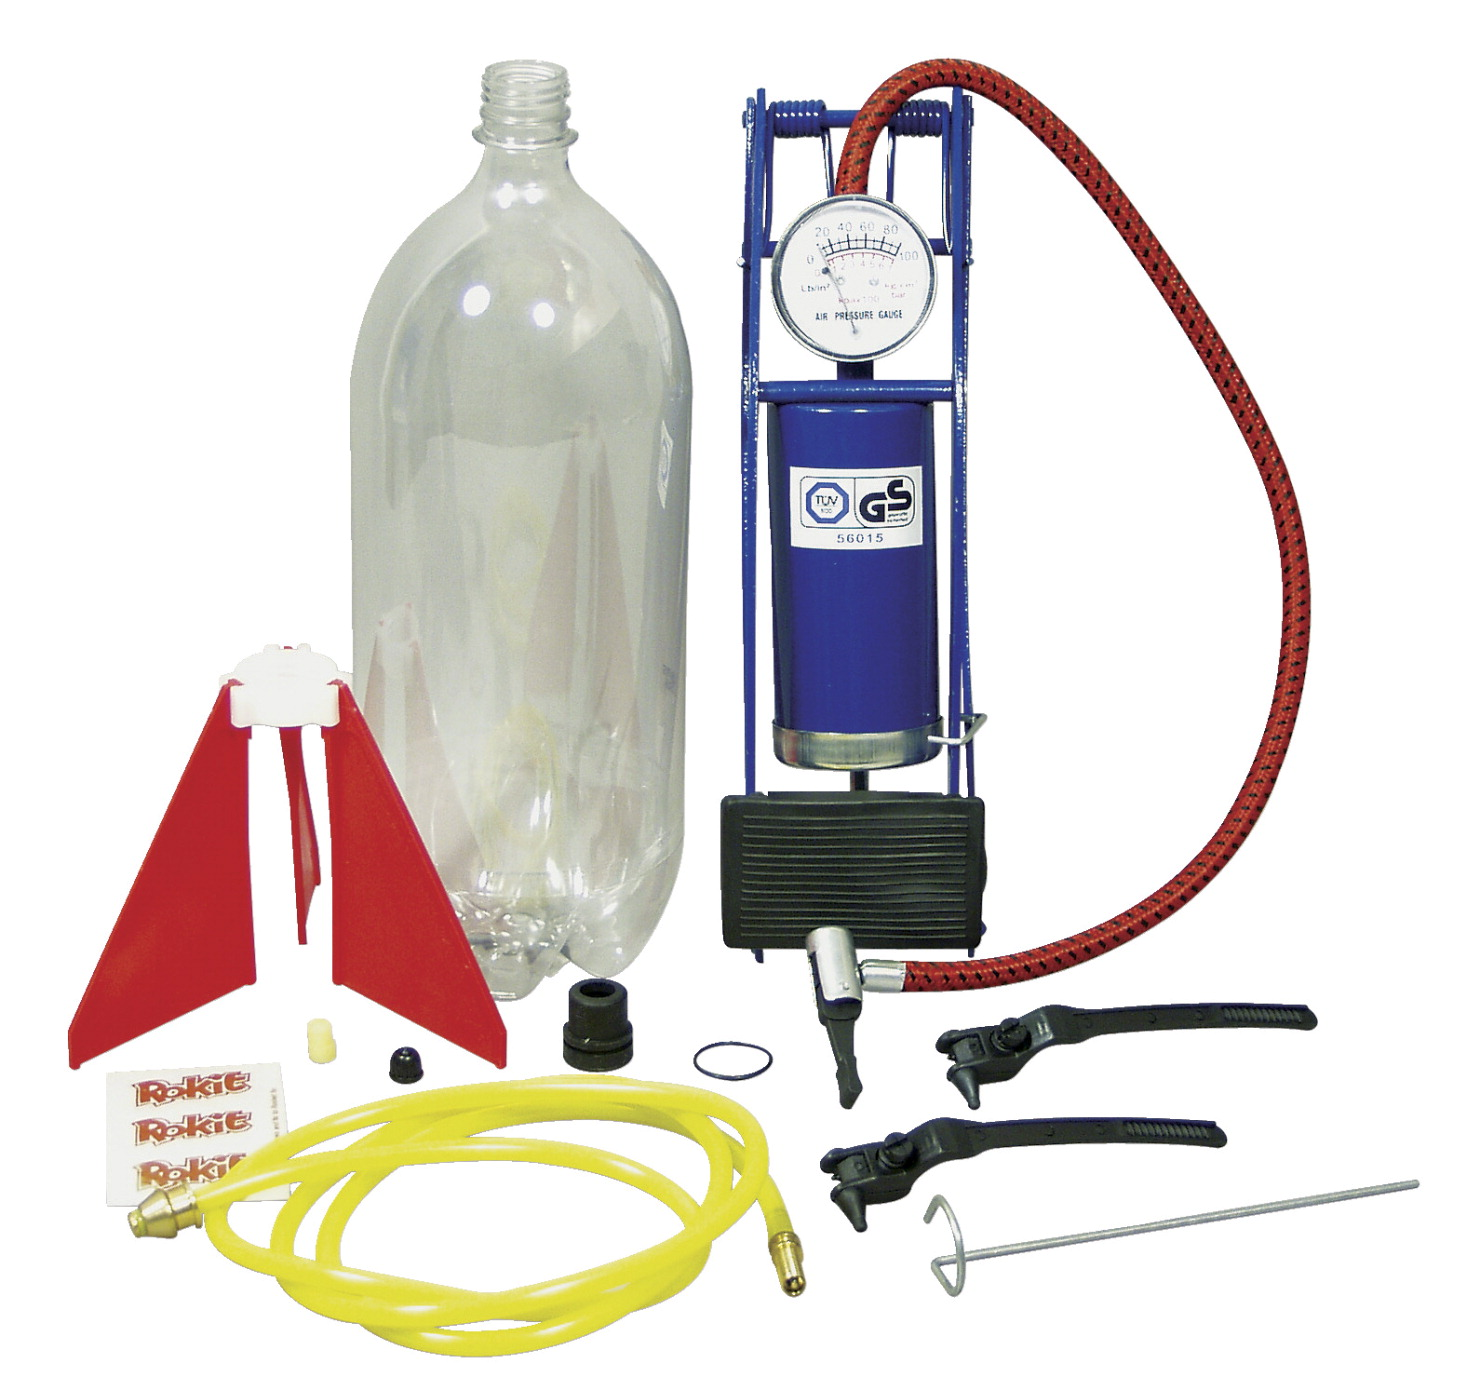 Delta Education Bottle Rocket Science Kit